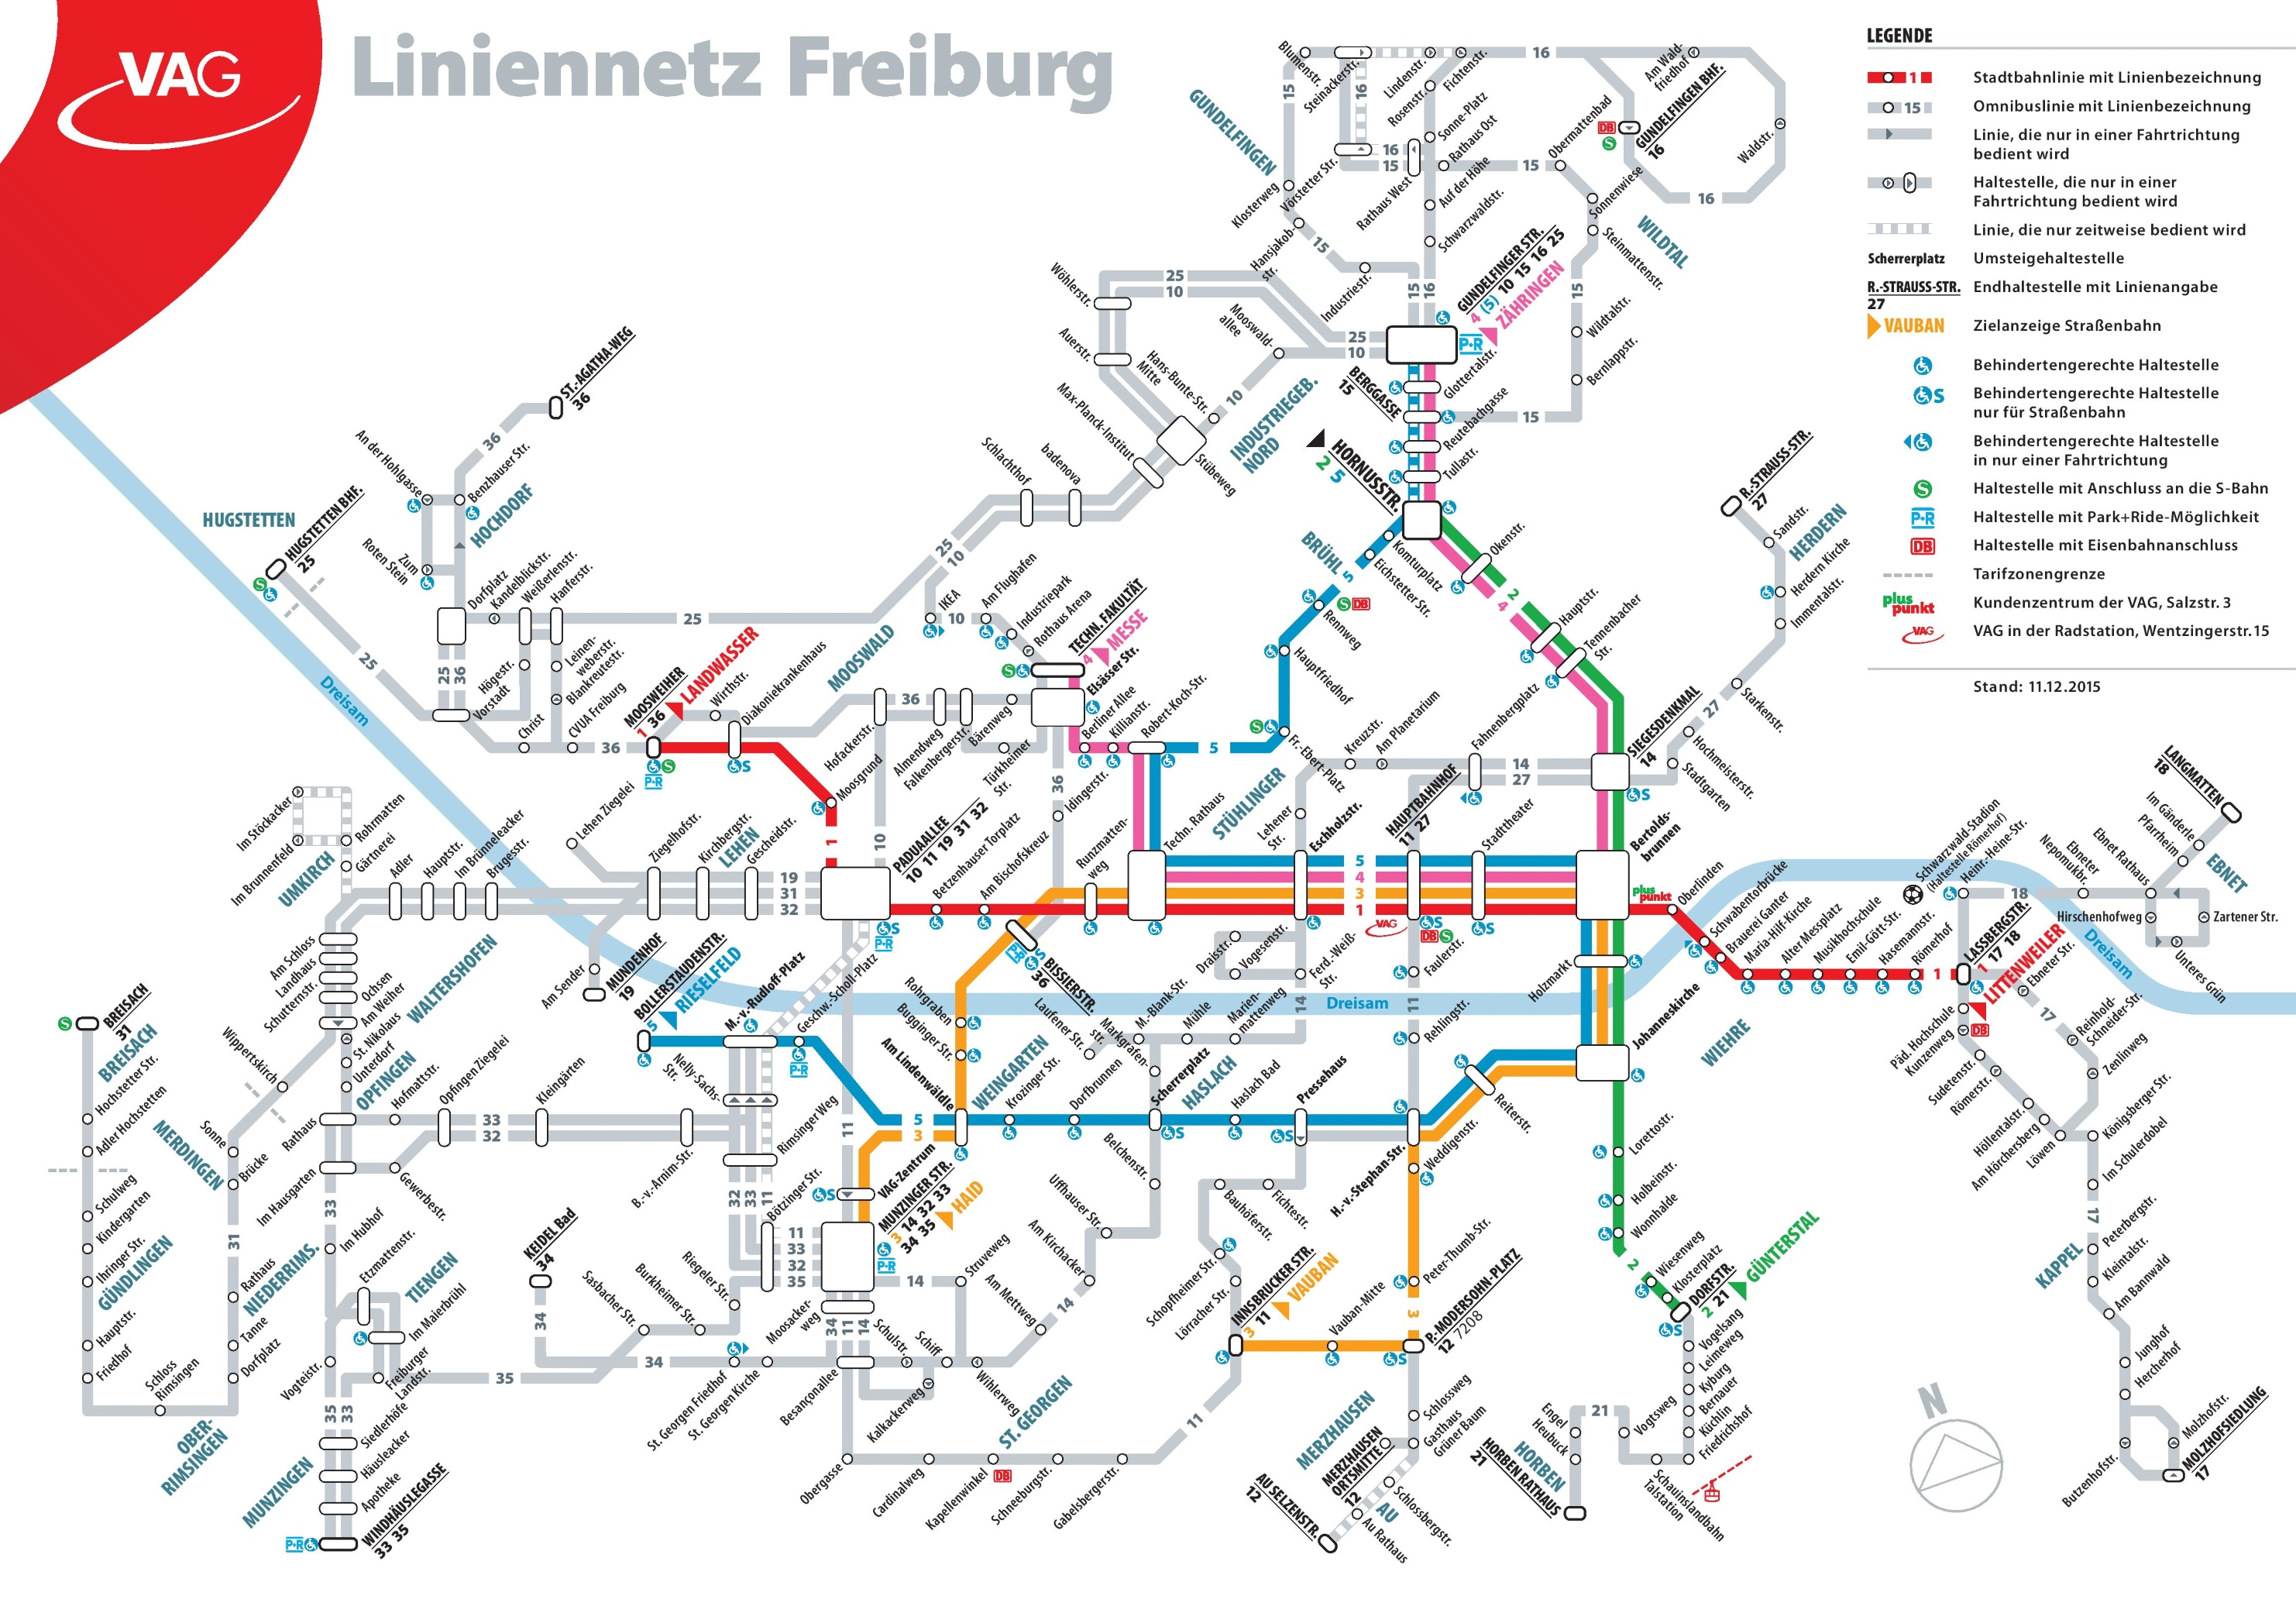 united states large cities maps with Freiburg Tram Map on Mecolor furthermore Famagusta Tourist Map likewise Rottnest Island Map as well Large Detailed Map Of Paraguay With Cities And Towns additionally Freiburg Tram Map.